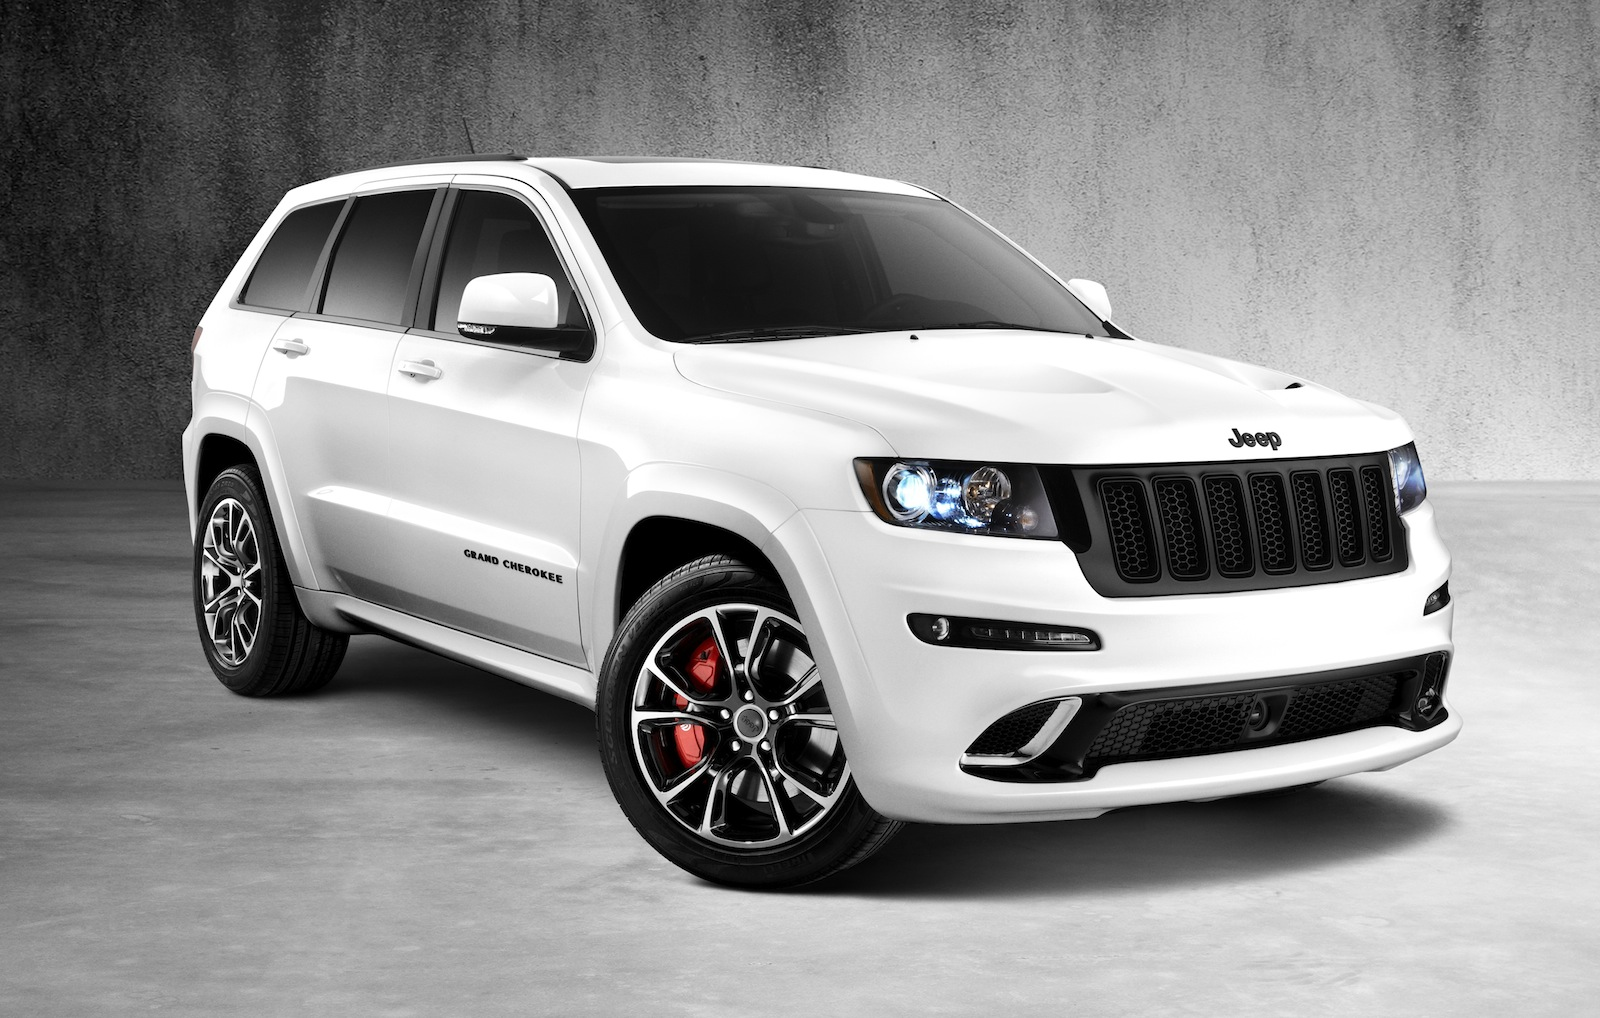 jeep grand cherokee srt8 alpine vapour special editions for australia car information news. Black Bedroom Furniture Sets. Home Design Ideas